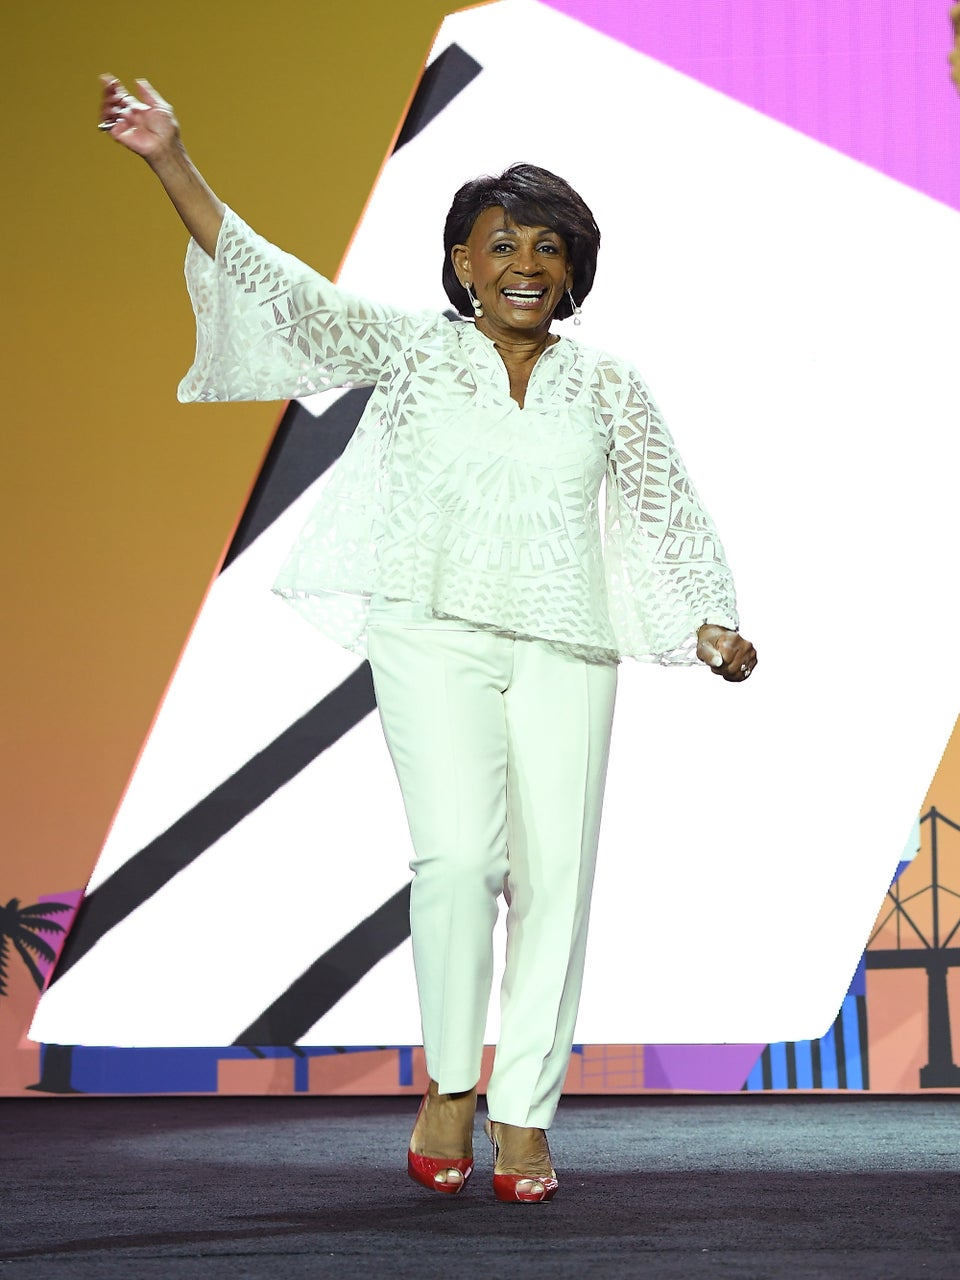 Rep. Maxine Waters Receives Suspicious Package Labeled 'Anthrax'